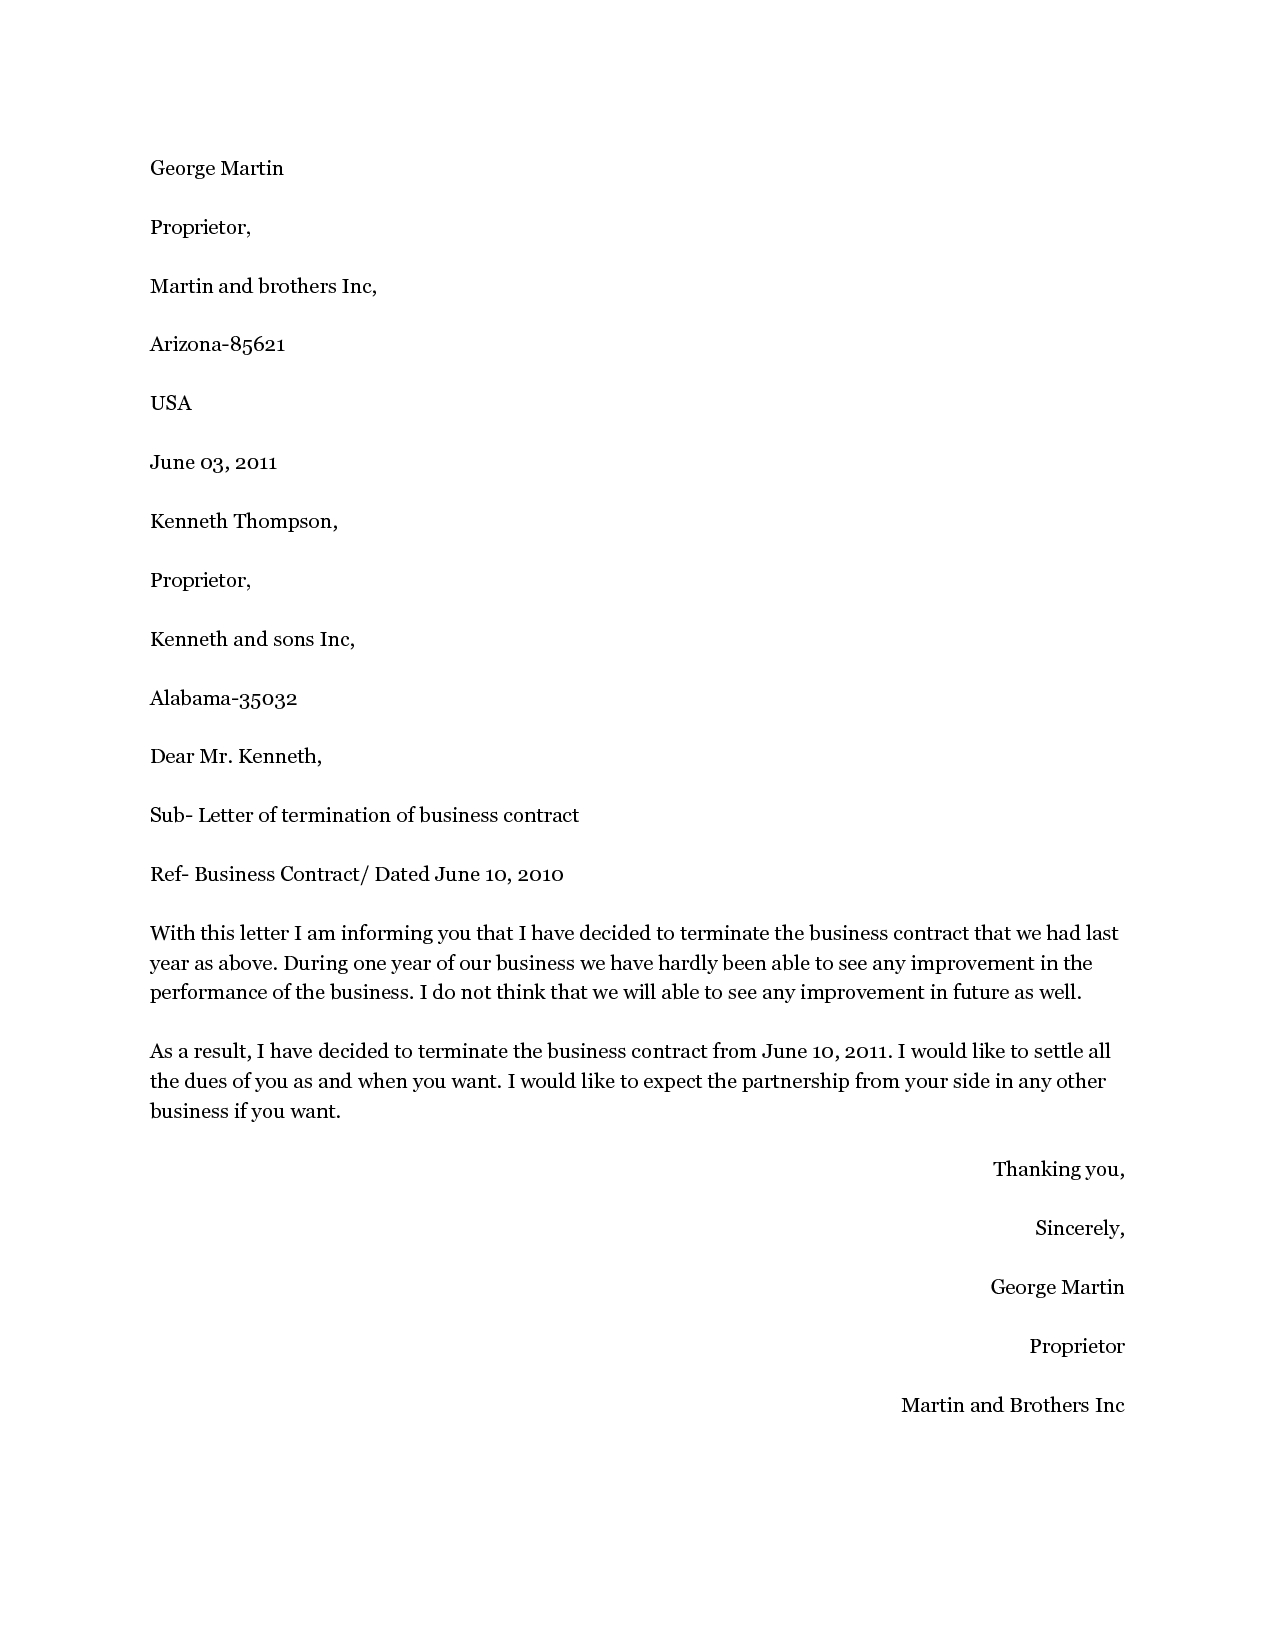 Business Contract Termination Letter Template - 20 Luxury Termination Service Agreement Letter Sample